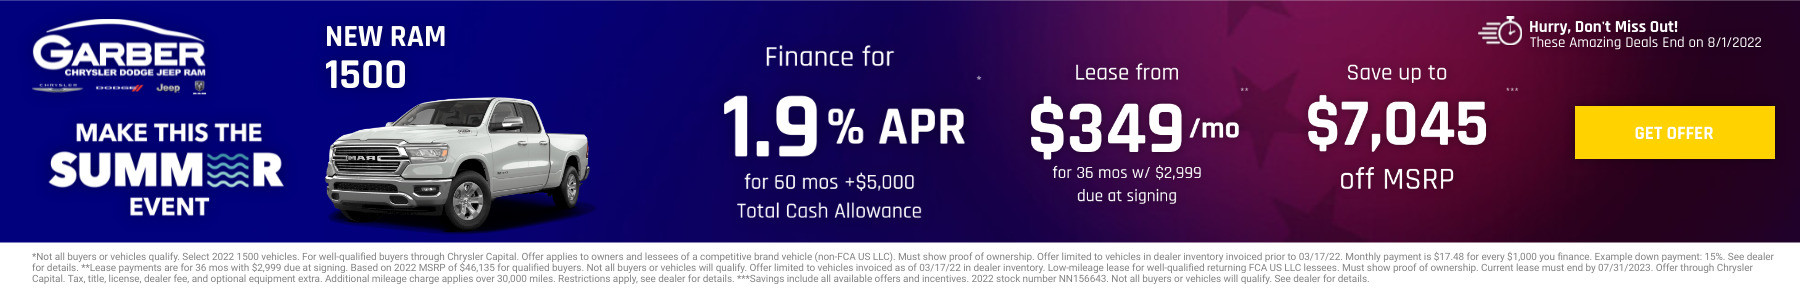 New RAM 1500 Current Deals and Offers in Green Cove Springs, FL